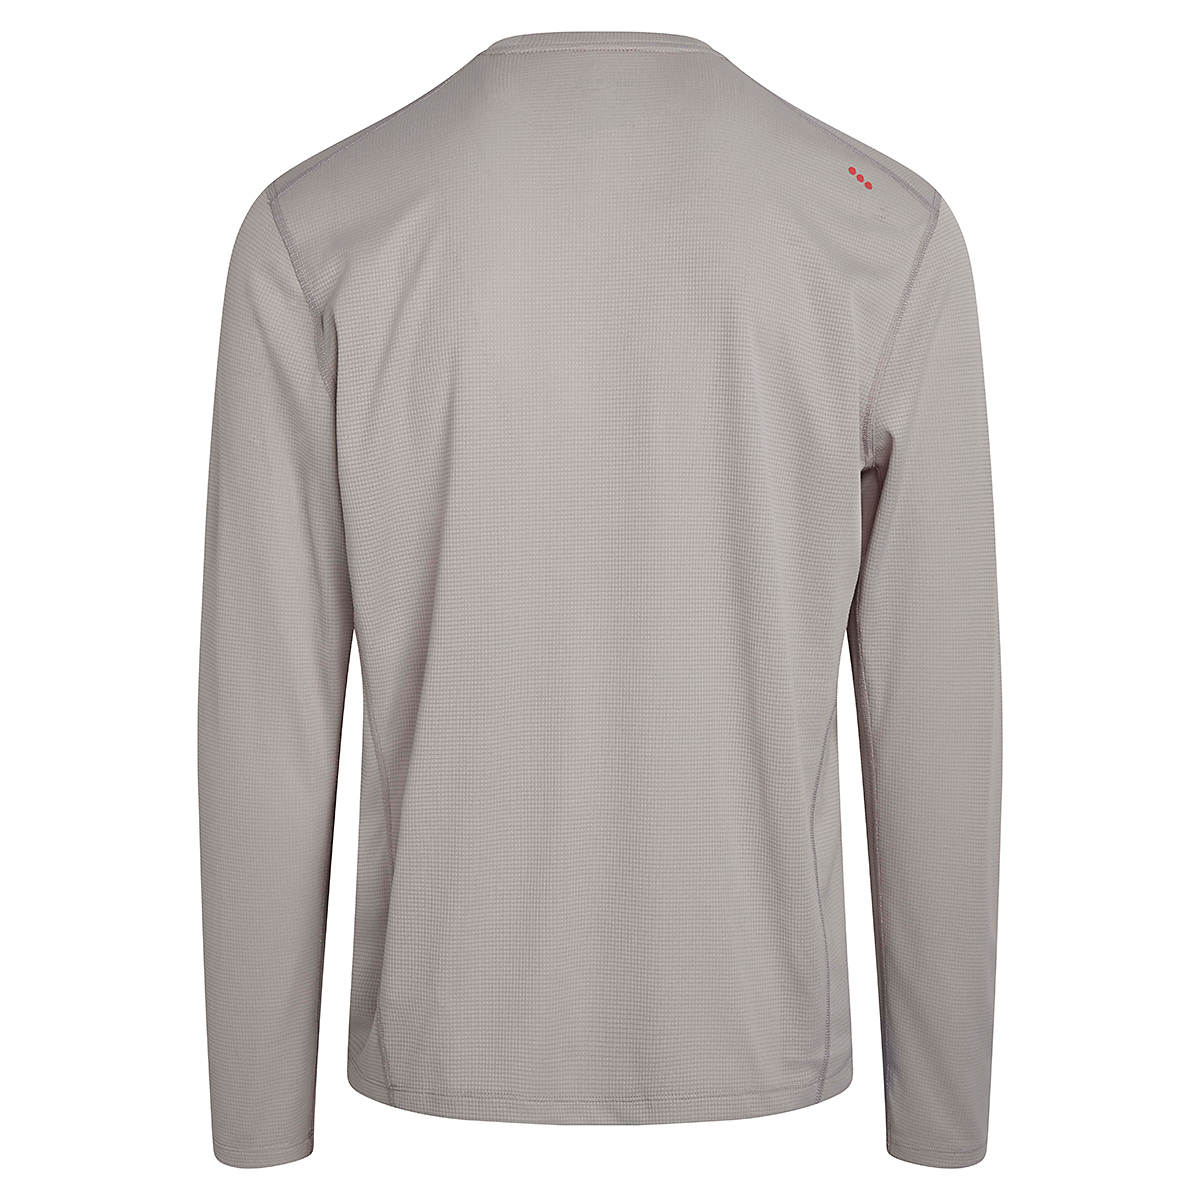 Men's Saucony Stopwatch Long Sleeve - Color: Alloy - Size: S, Alloy, large, image 4